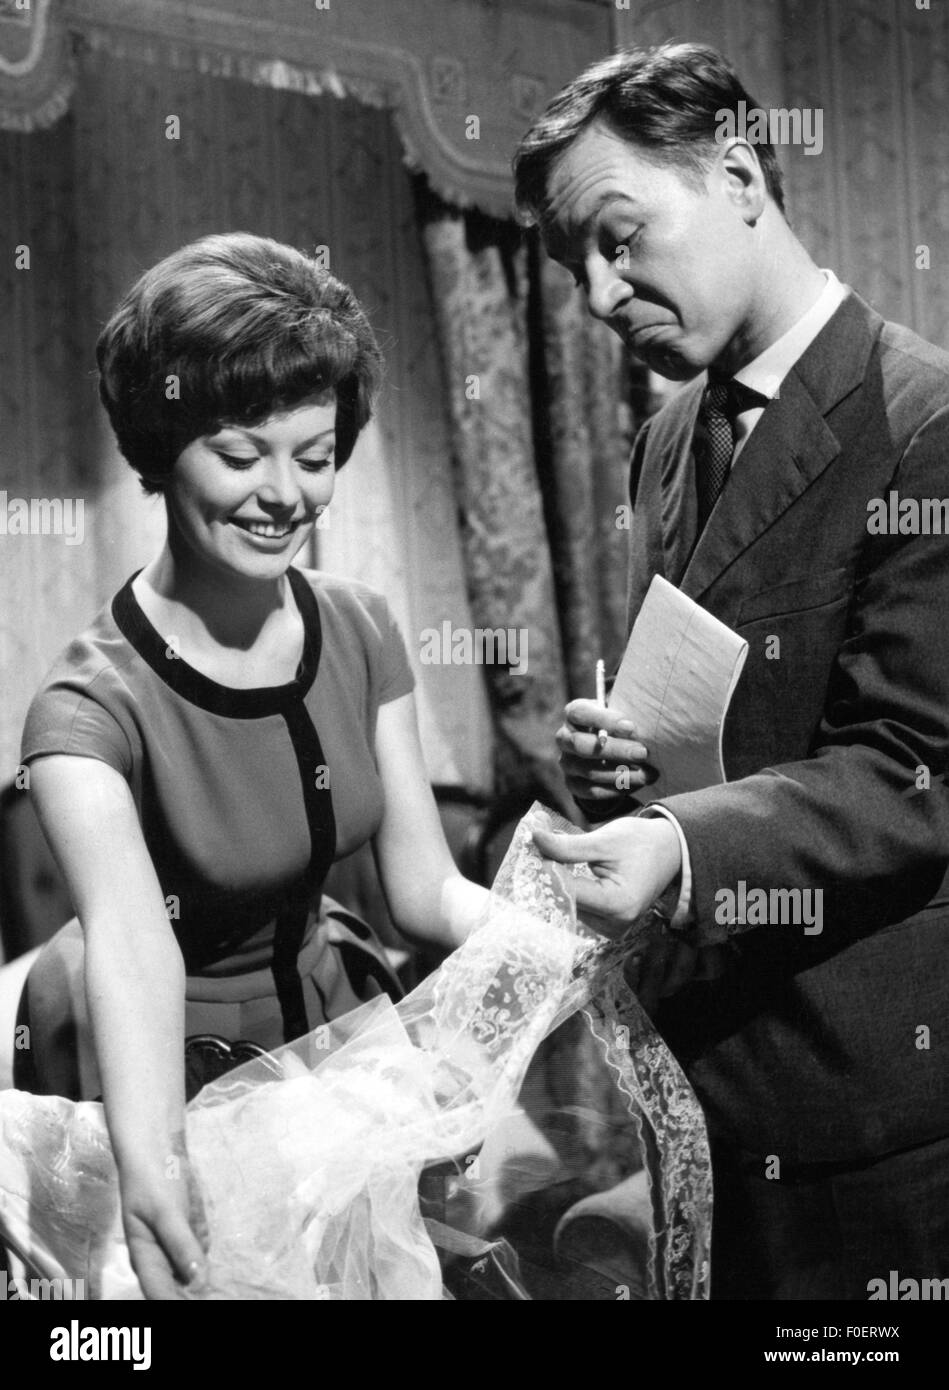 broadcast, television, programmes, commercial for curtains, Germany, 1960, Additional-Rights-Clearences-NA - Stock Image